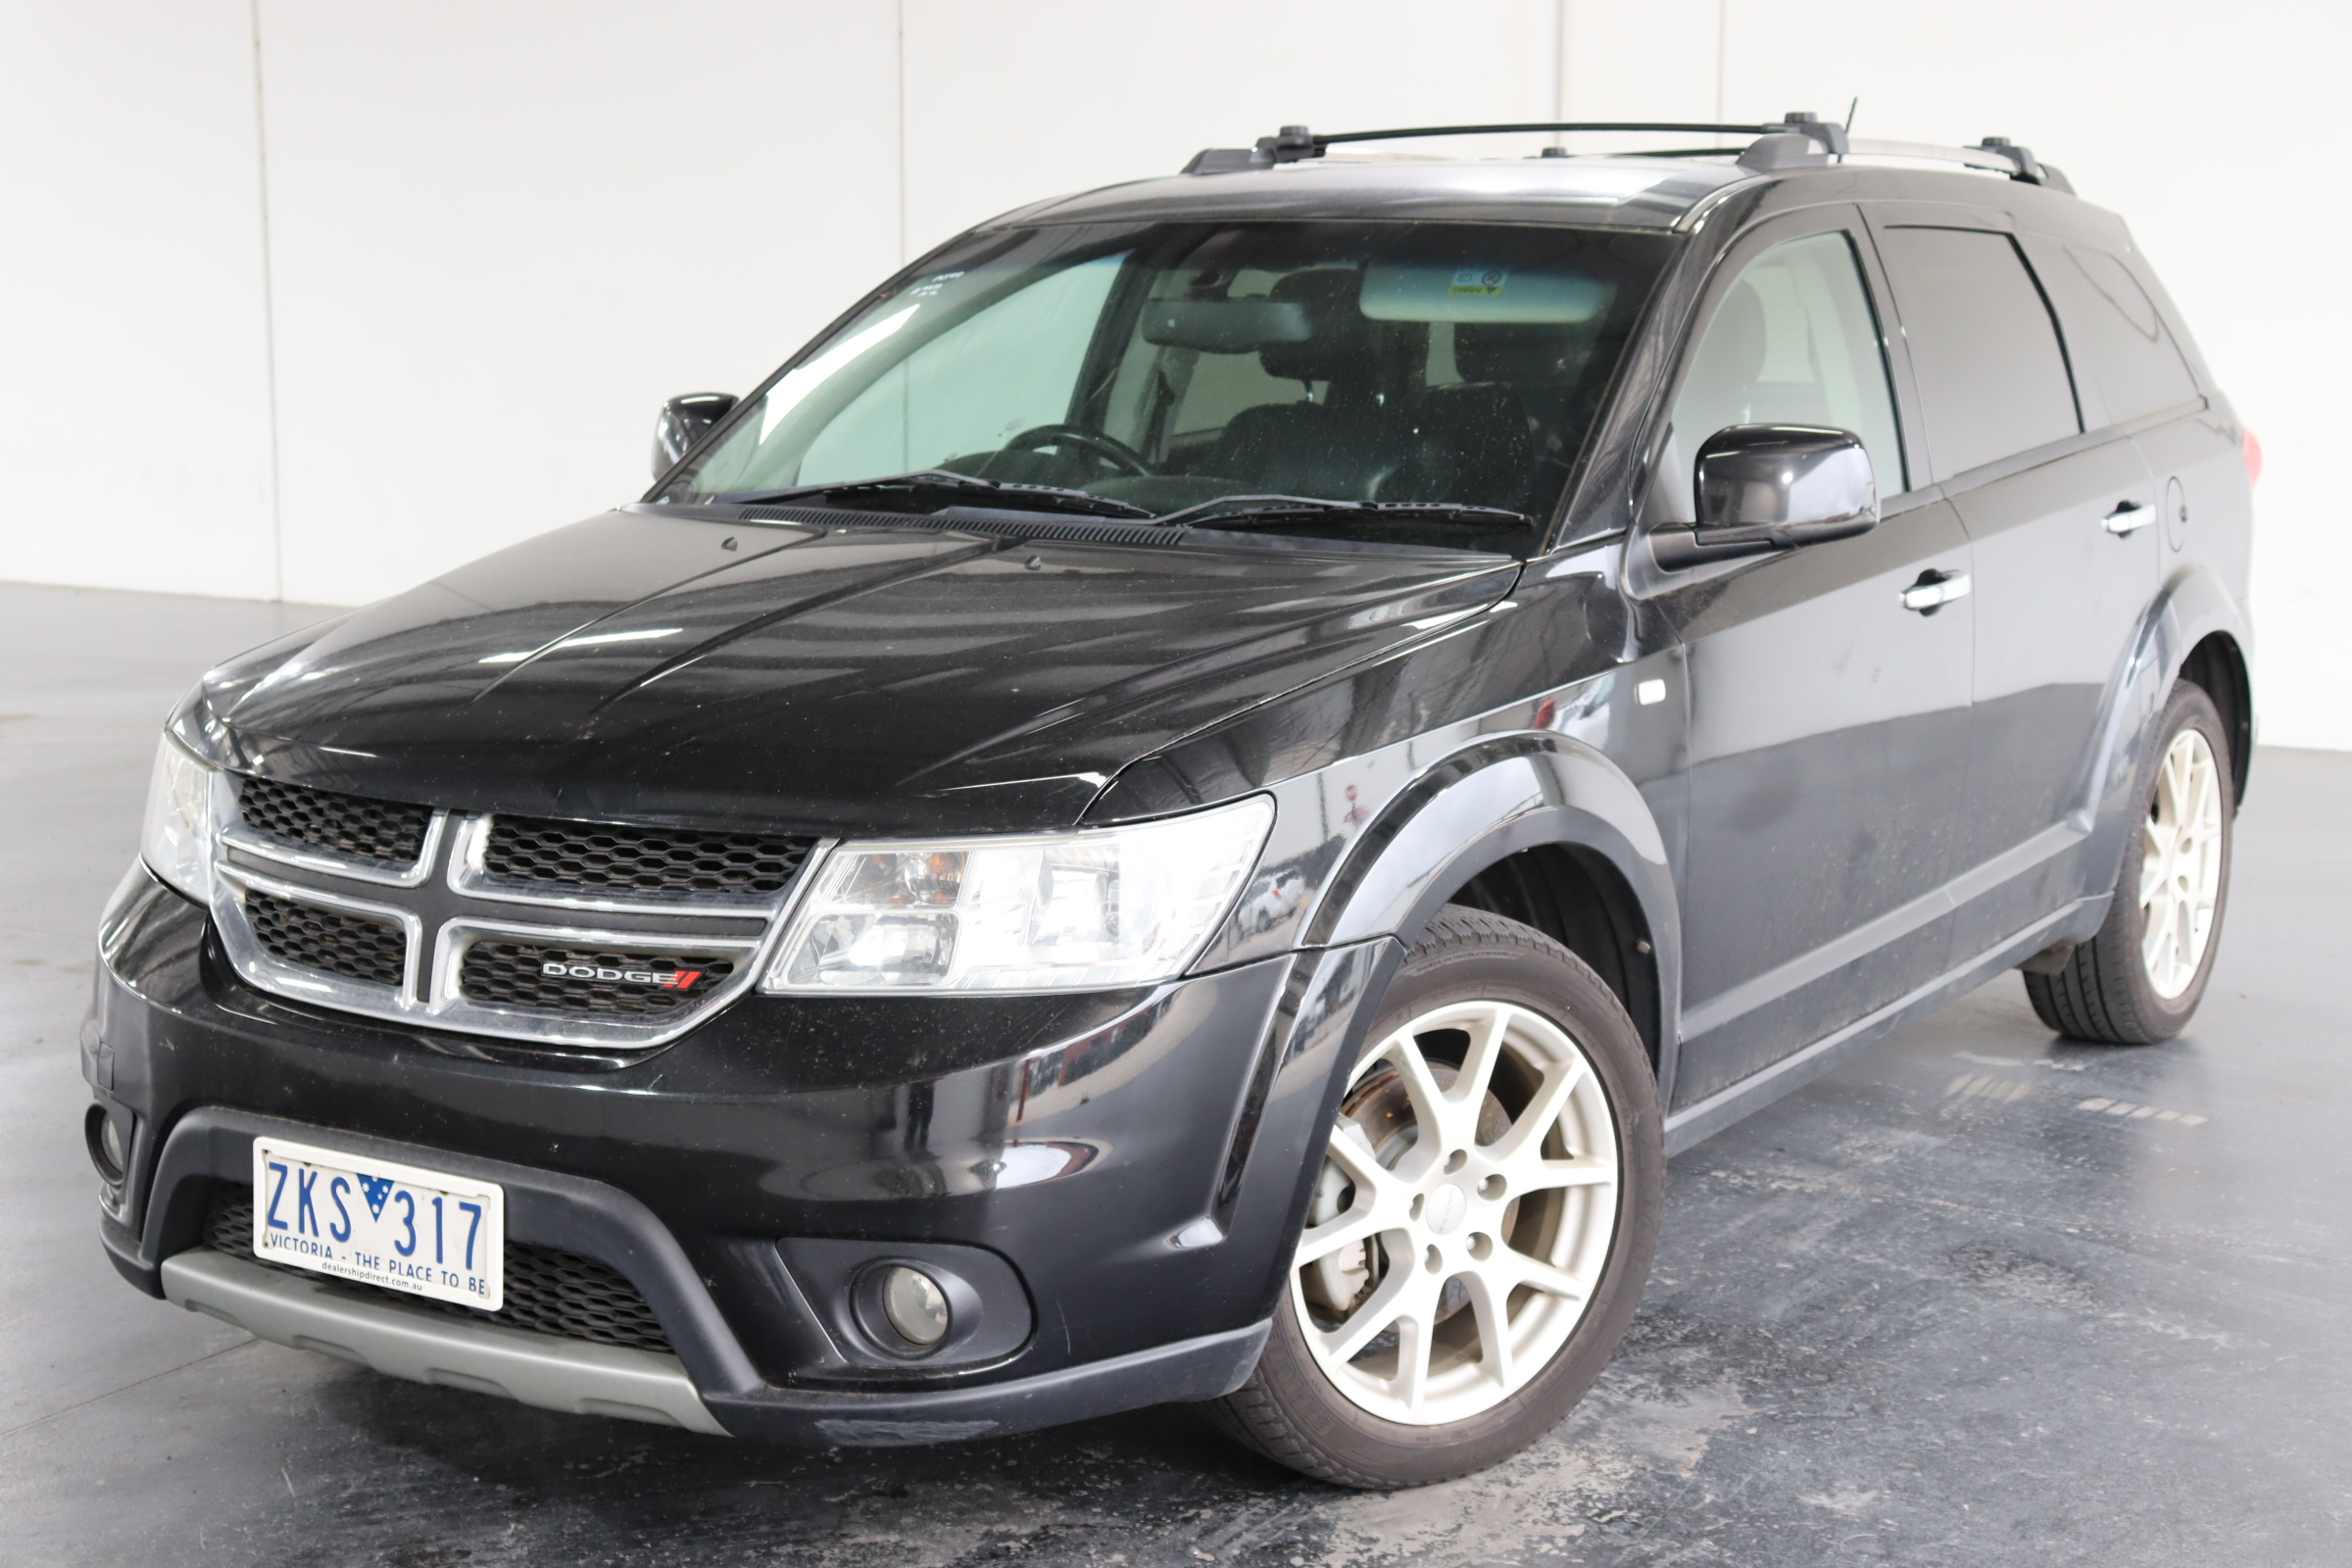 2012 Dodge Journey R/T Automatic 7 Seats People Mover